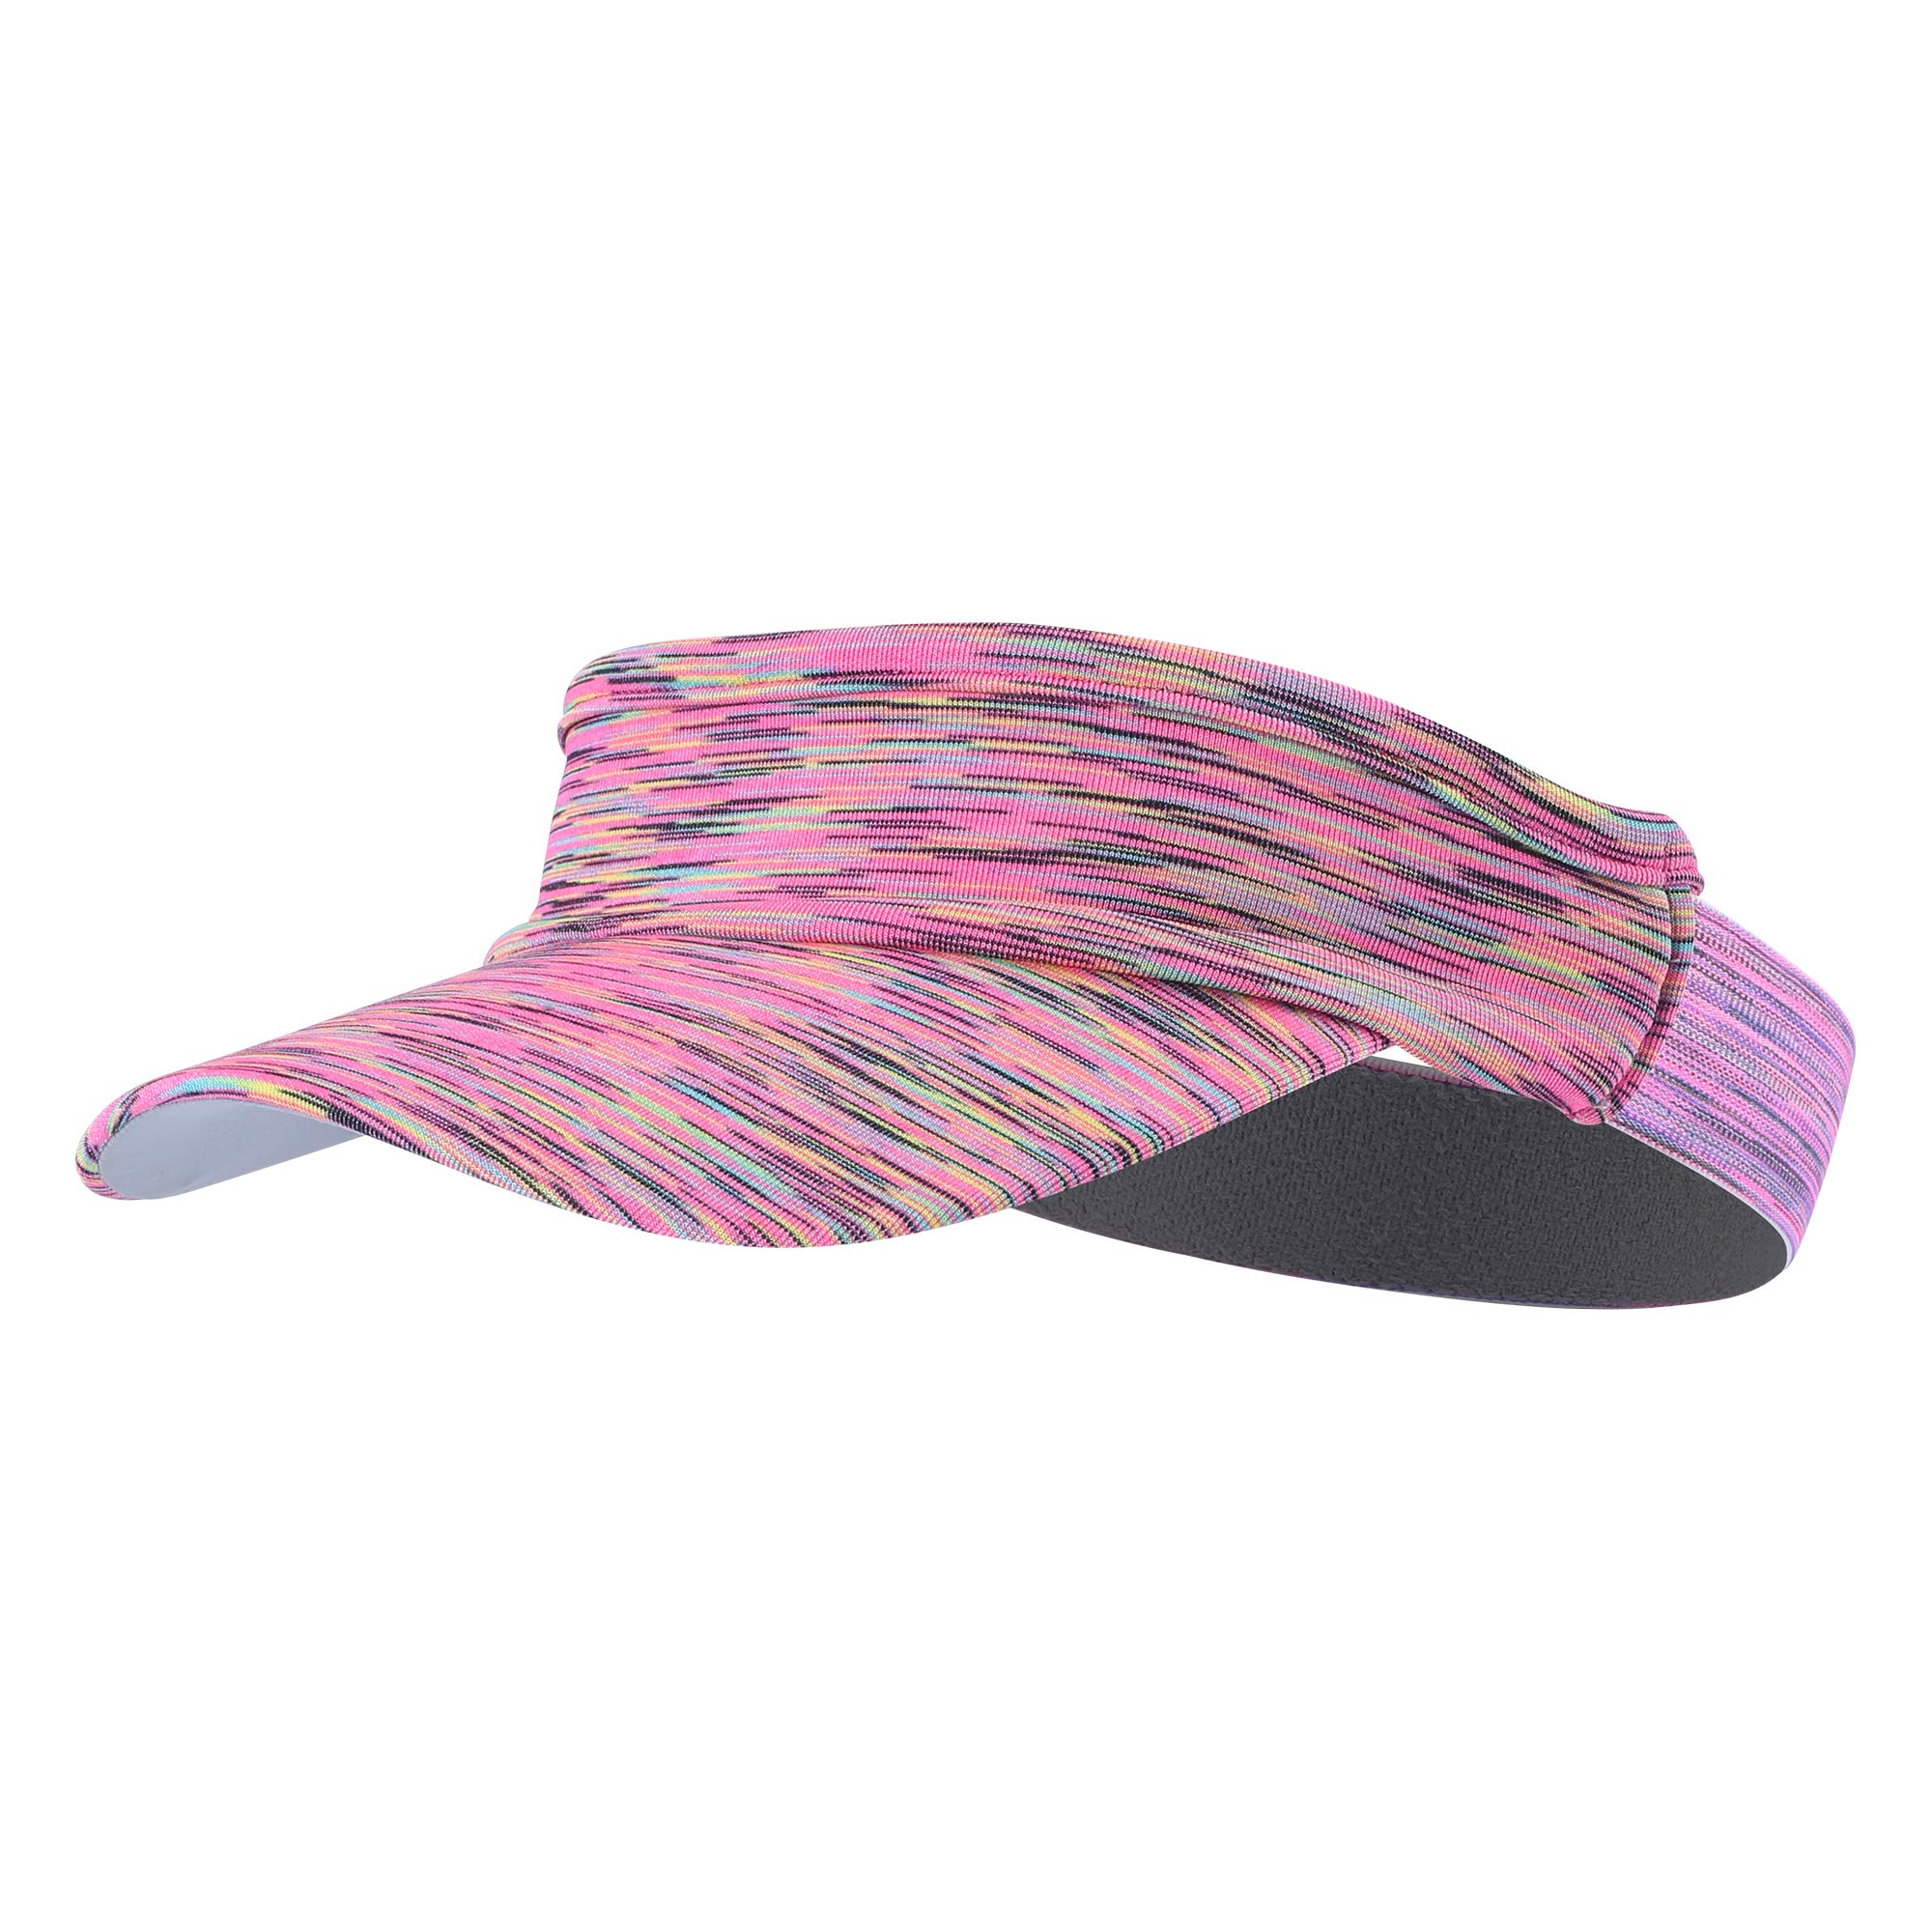 TEFITI Fitness Moisture Wicking Headgear